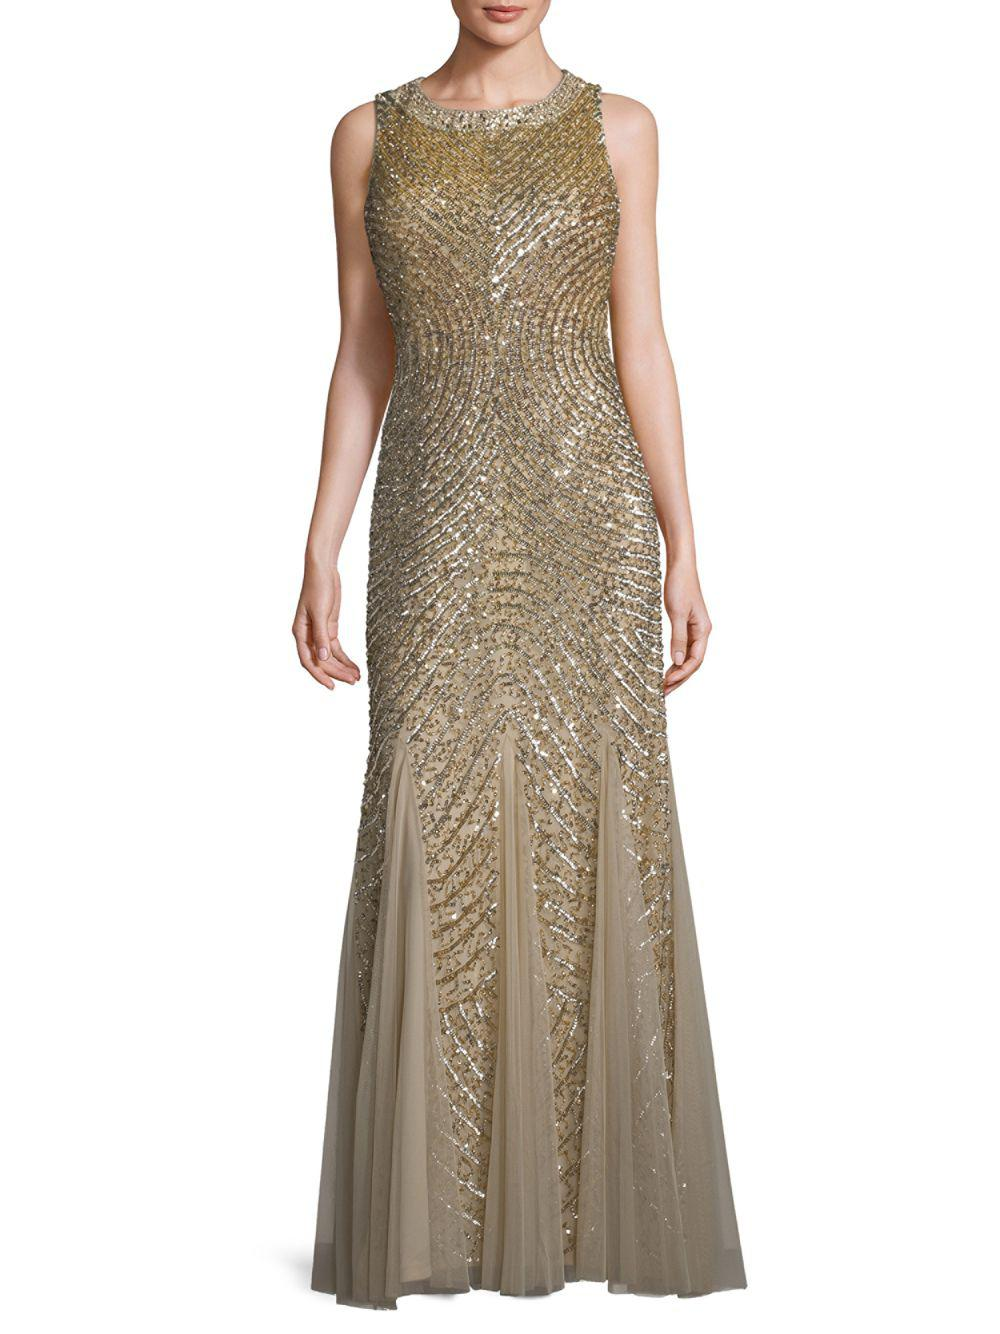 Lyst - Aidan Mattox Embellished Circle-back Godet Gown in Metallic